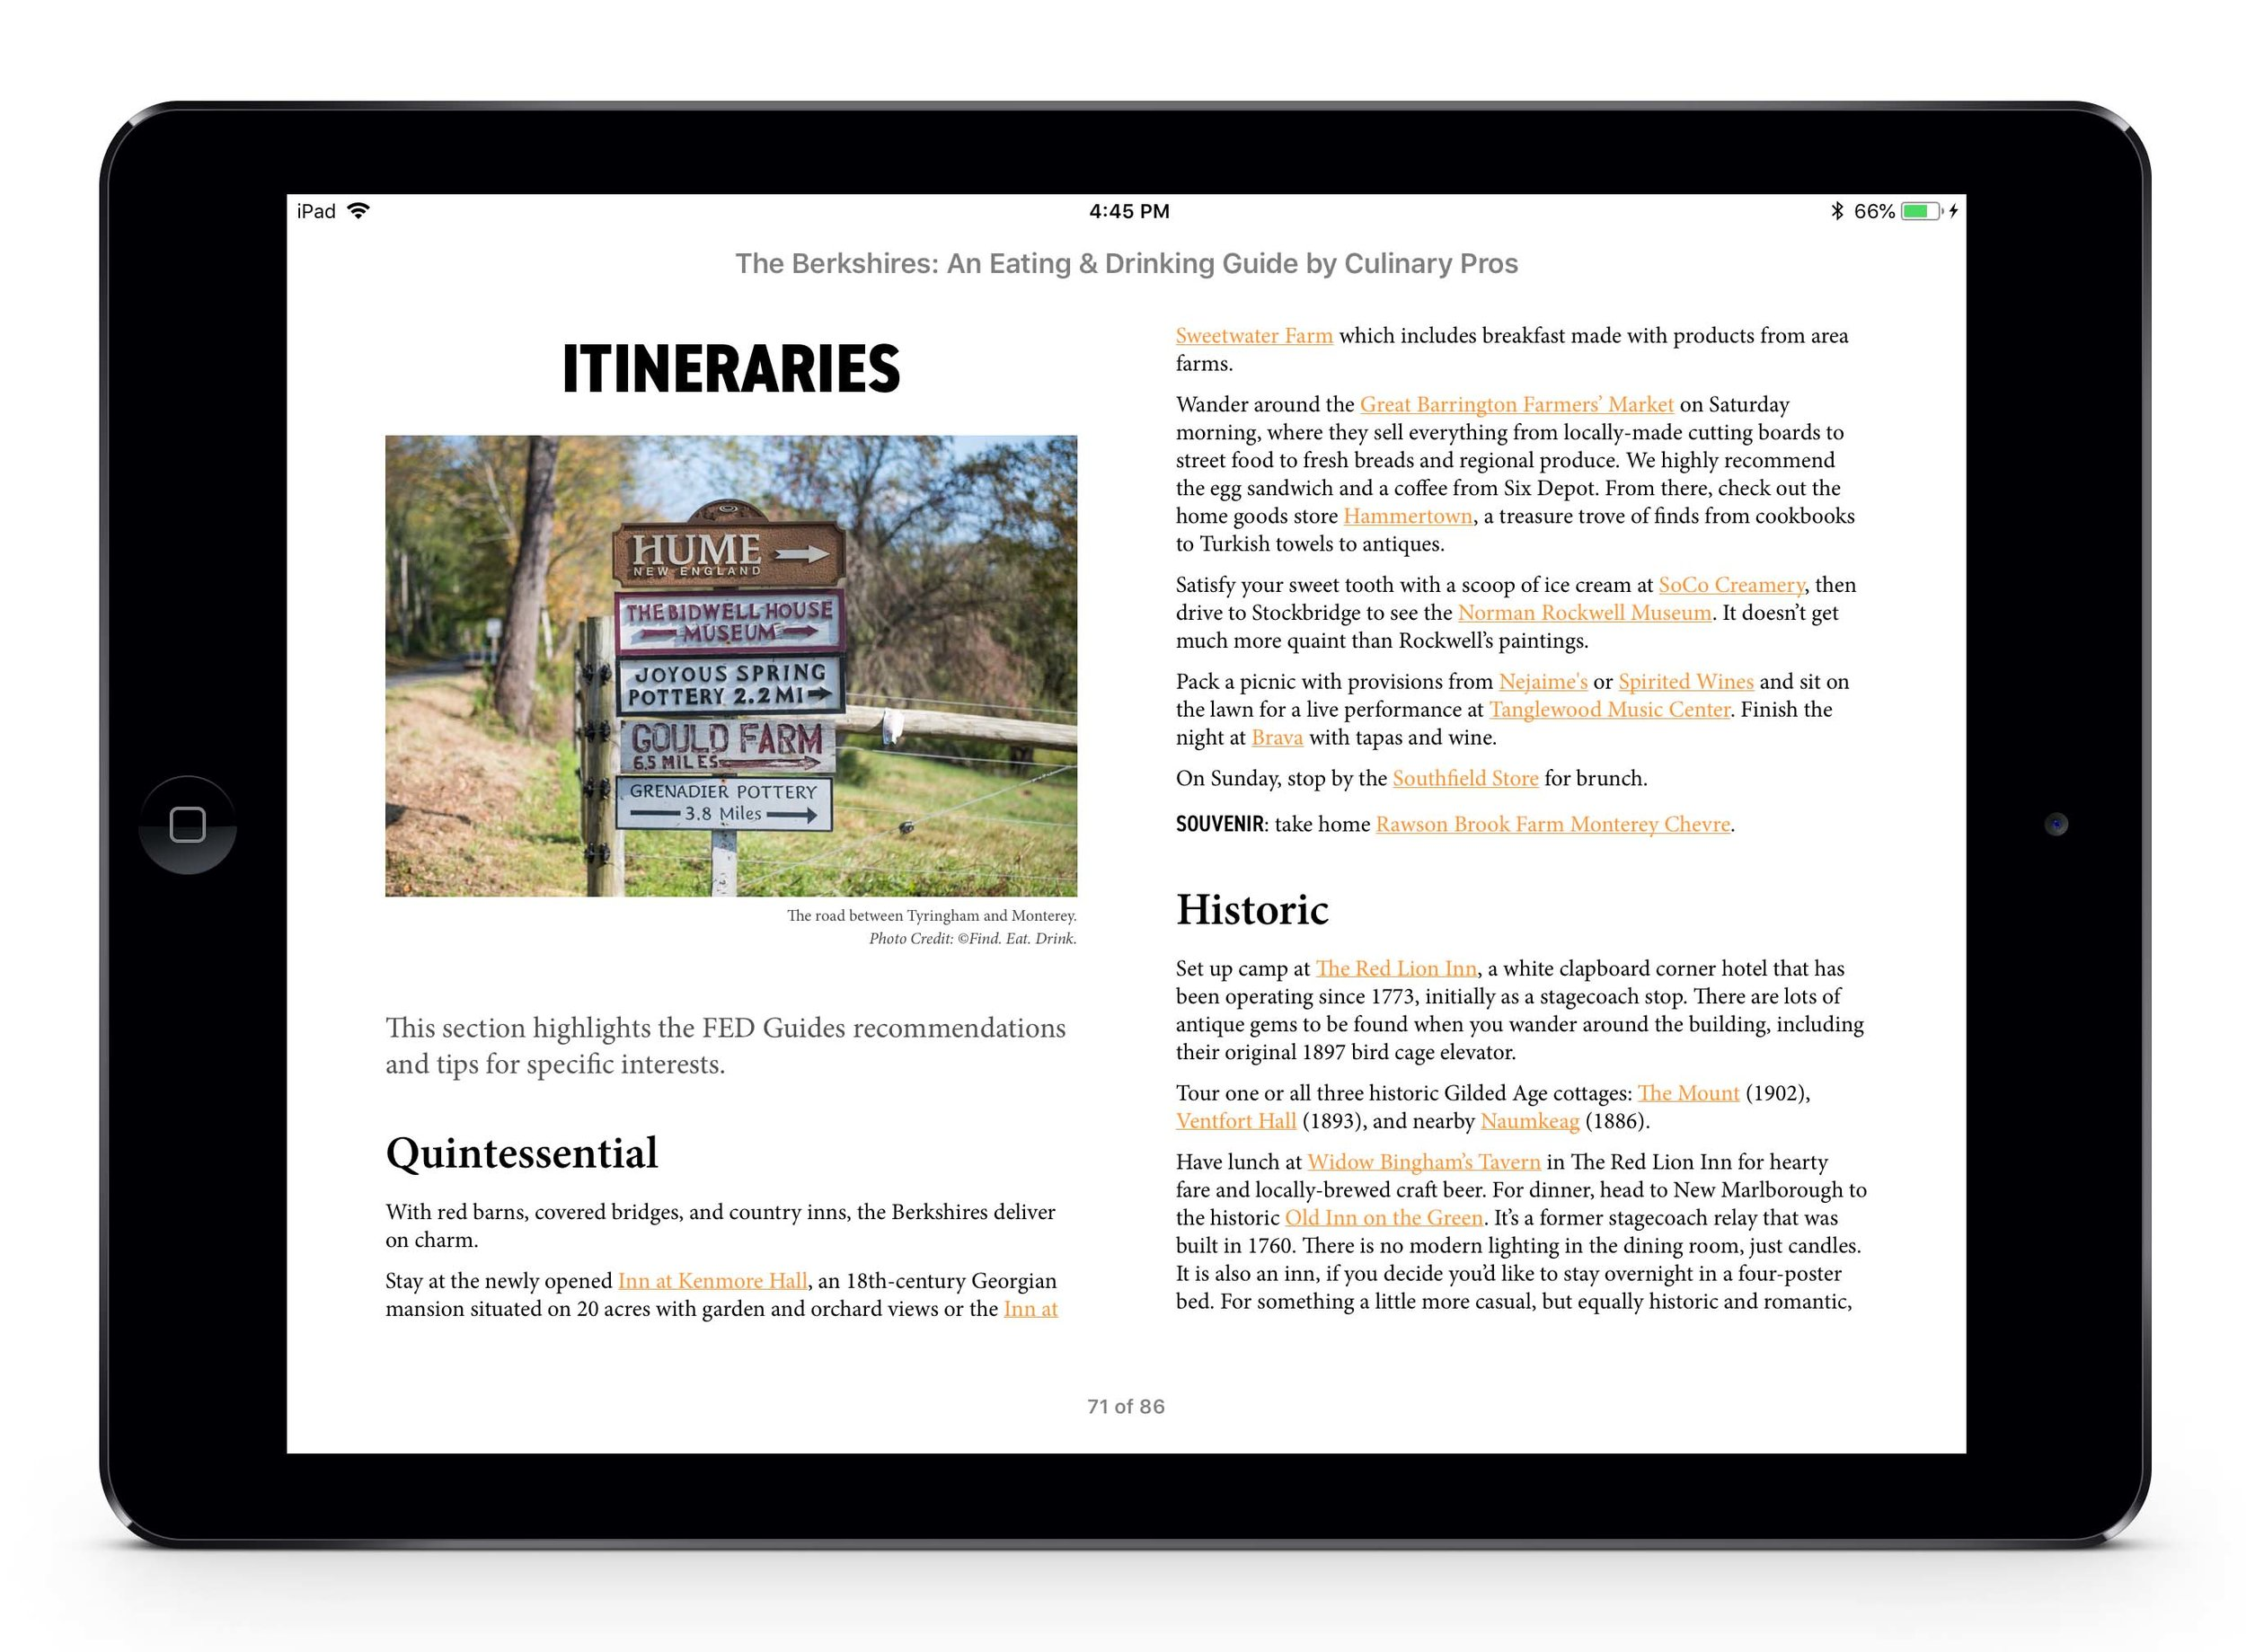 iPadAir_Berkshires_Screenshots_4.10.jpg